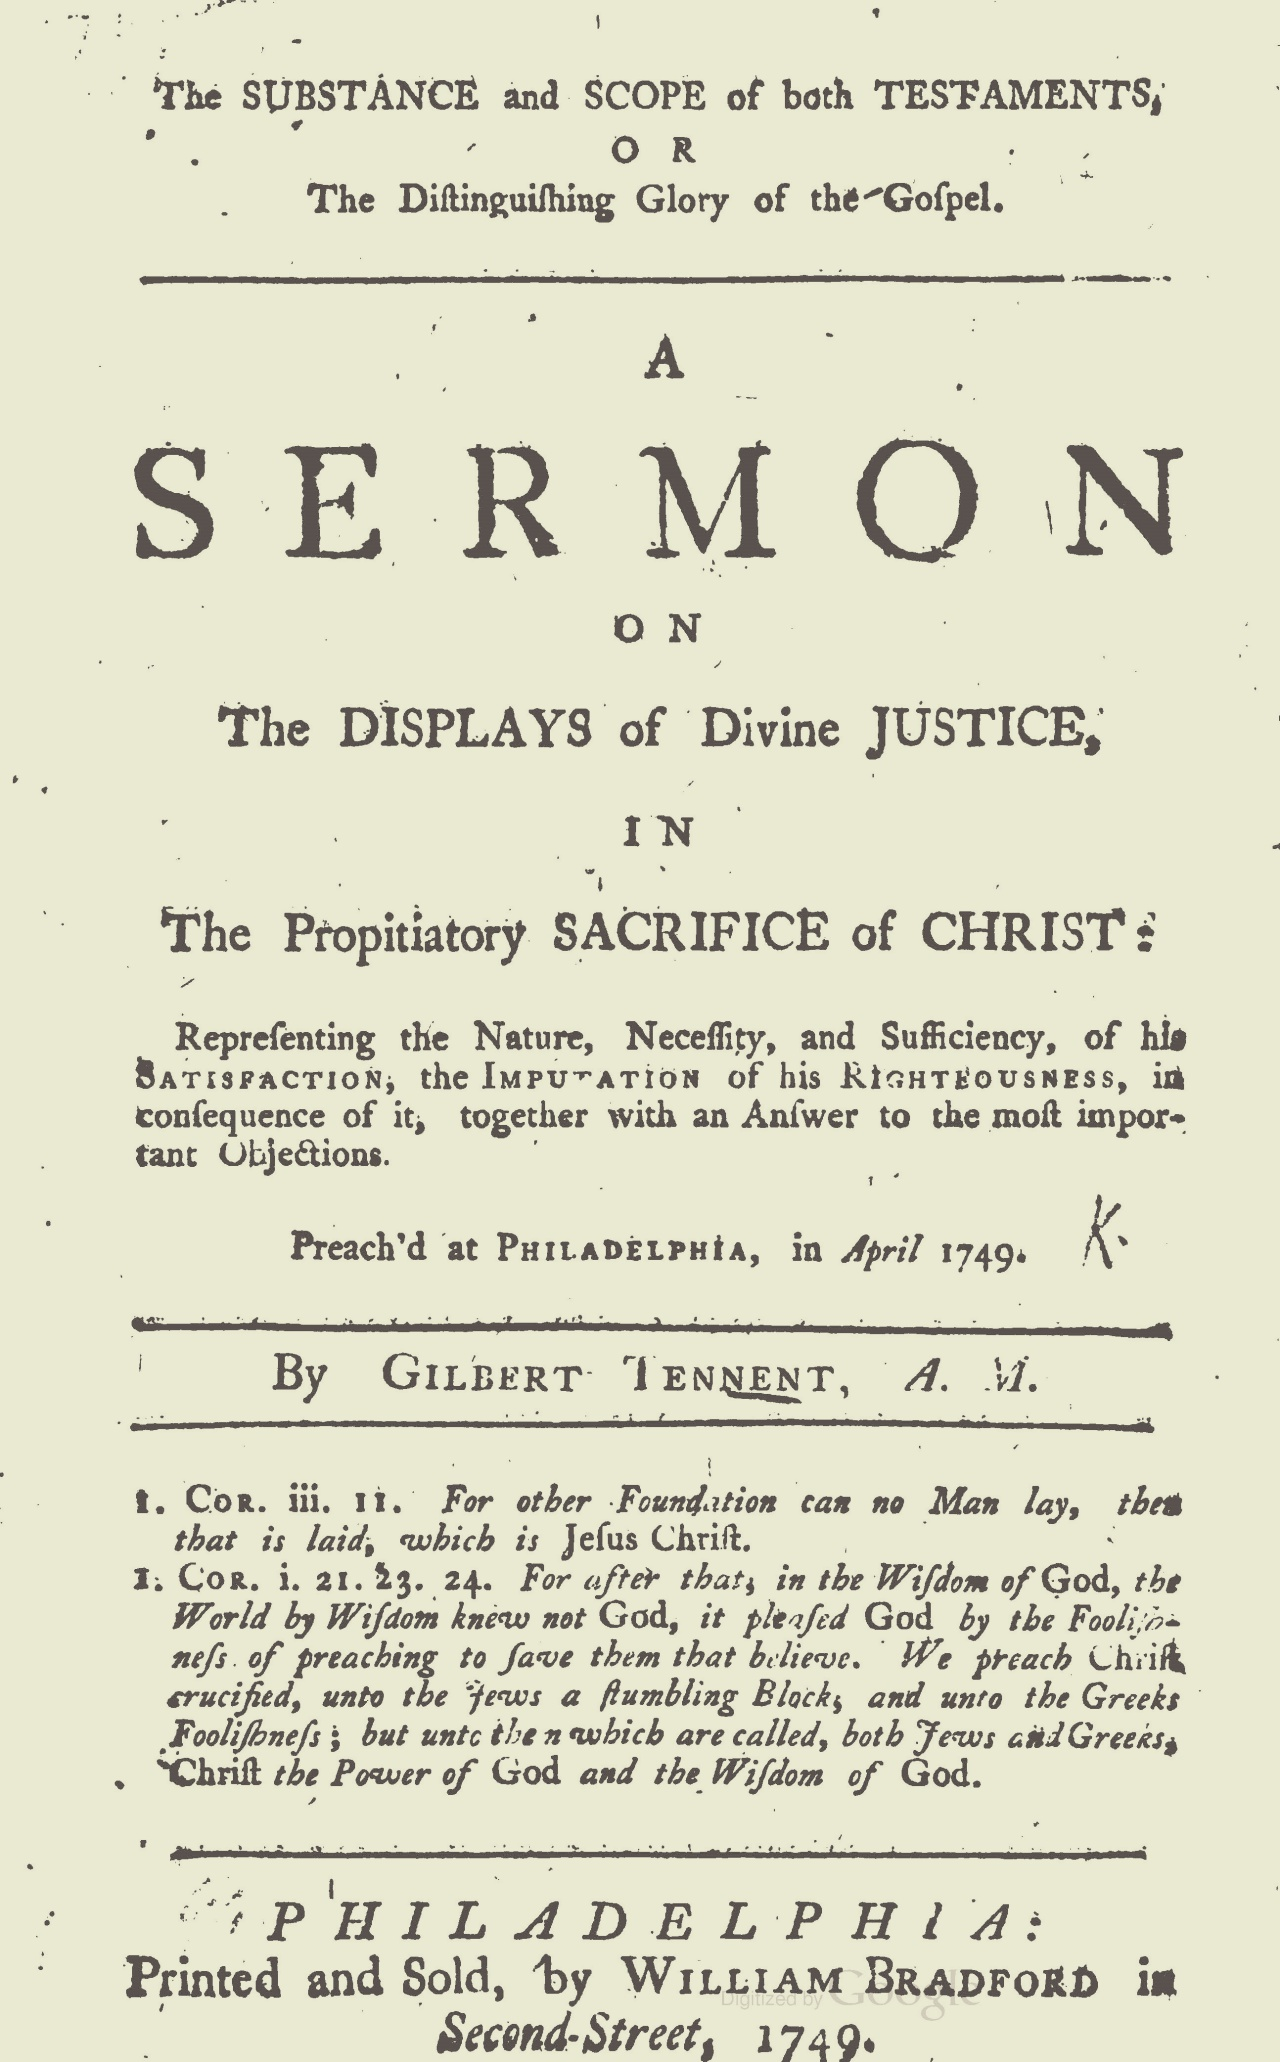 Tennent, Gilbert, The Substance and Scope of Both Testaments Title Page.jpg